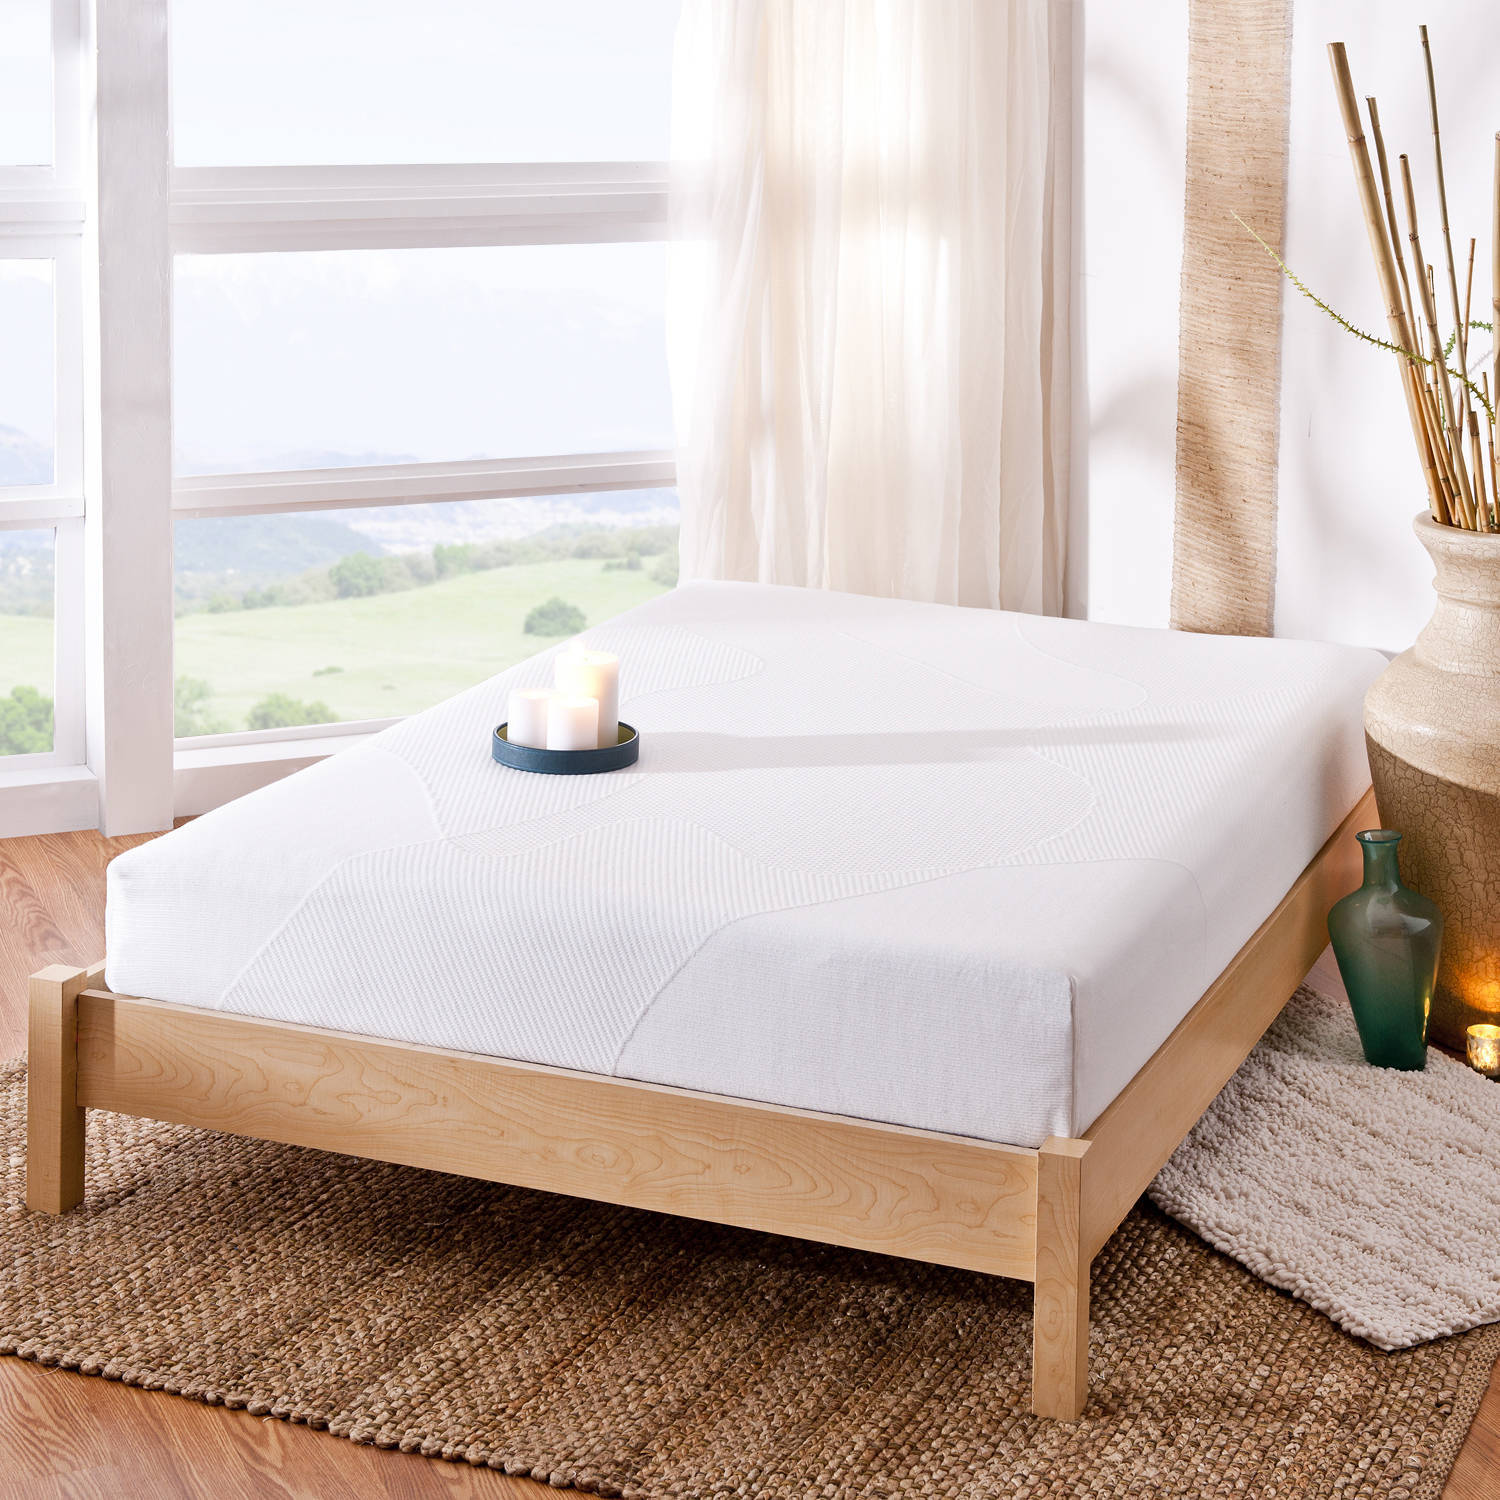 "Spa Sensations 8"" Memory Foam Mattress with Bed Frame Set"